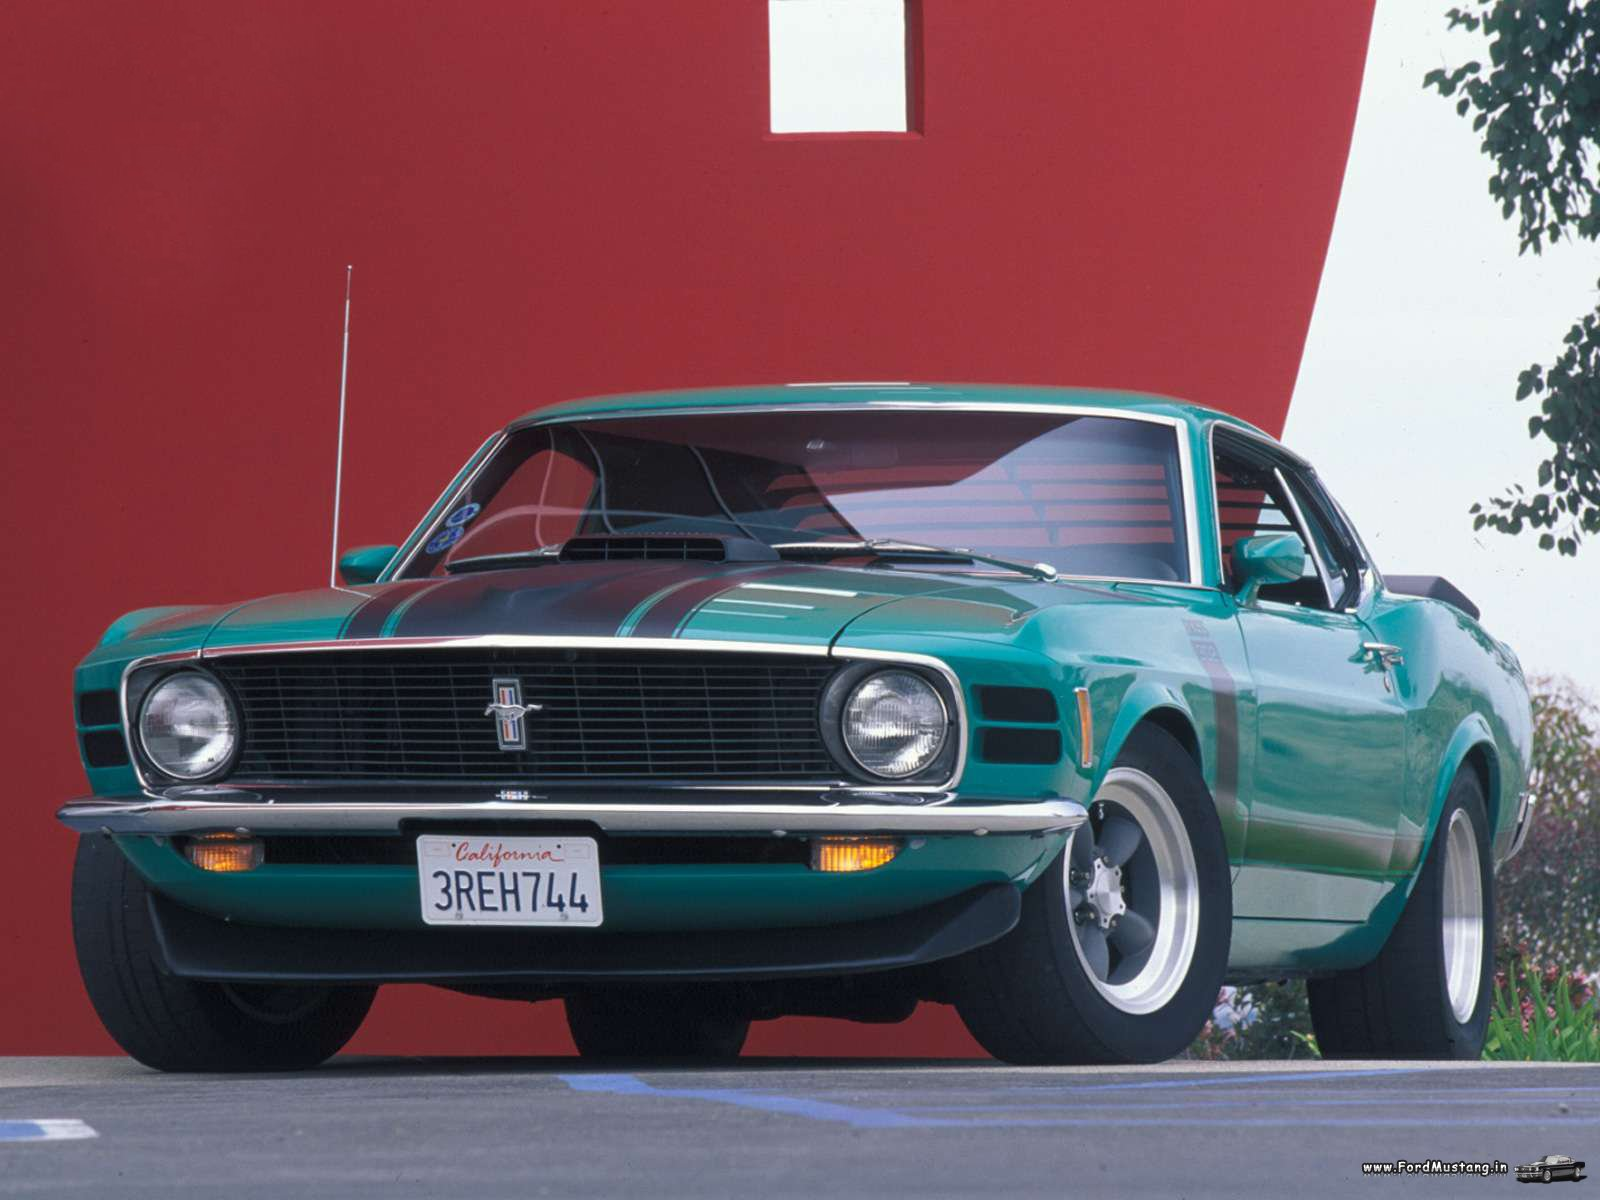 Ford Mustang Boss 302 (1970) 1600×1200 Wallpapers | Ford ...